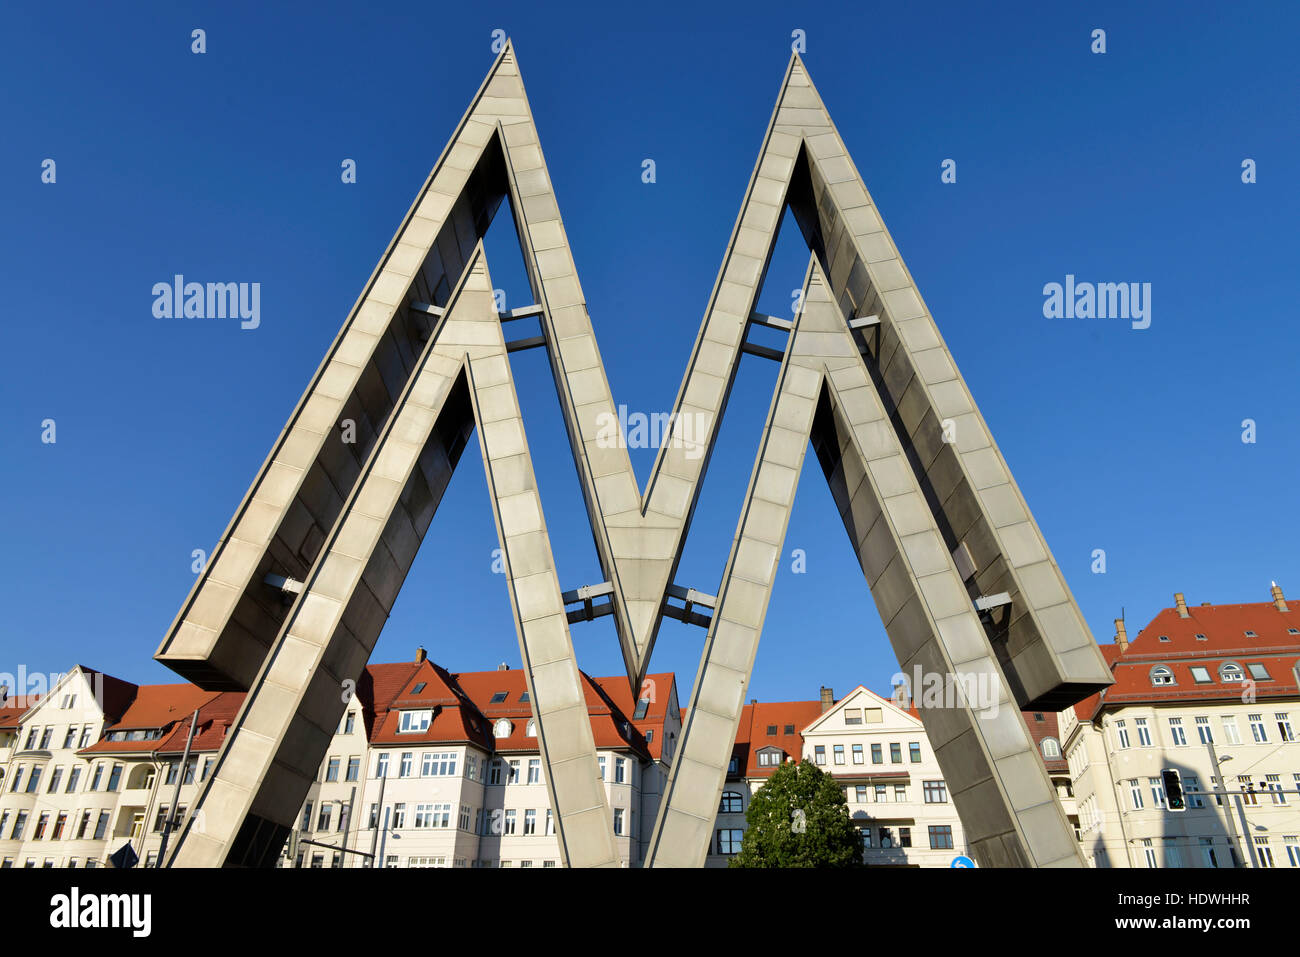 Leipzig Alte Messe Alte Messe Stock Photos Alte Messe Stock Images Alamy